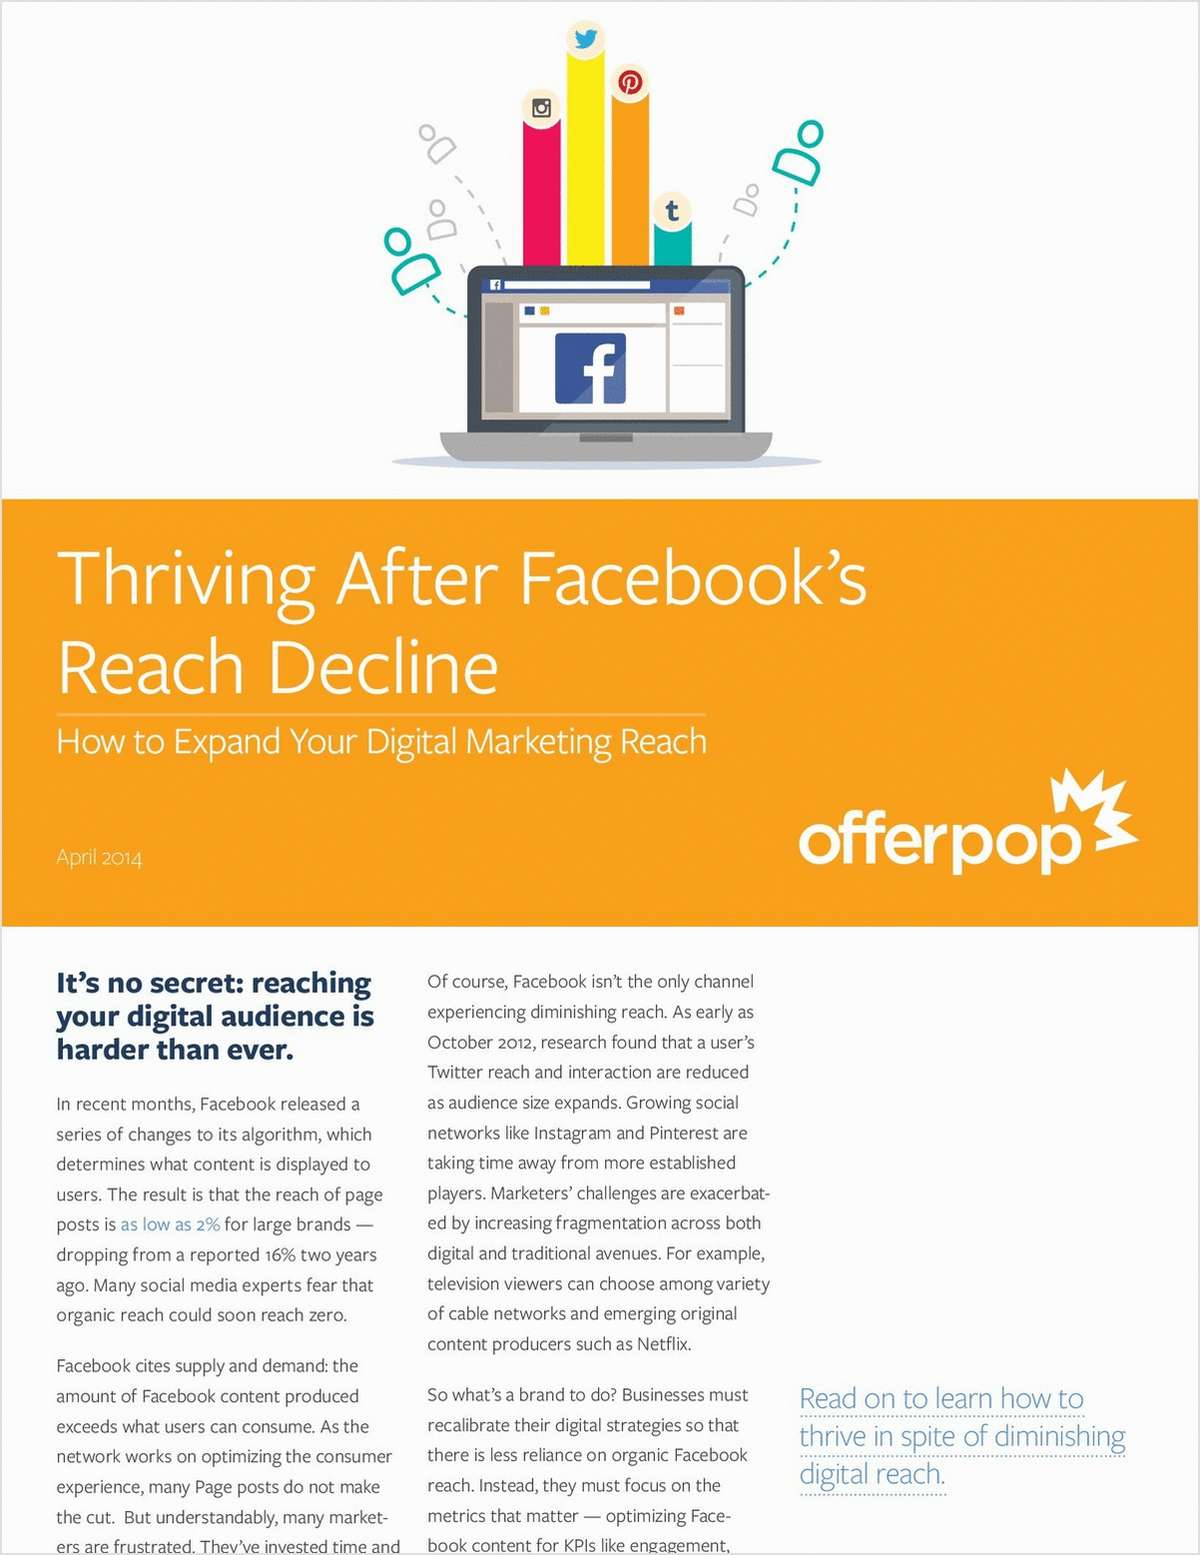 Thriving after Facebook's Reach Decline